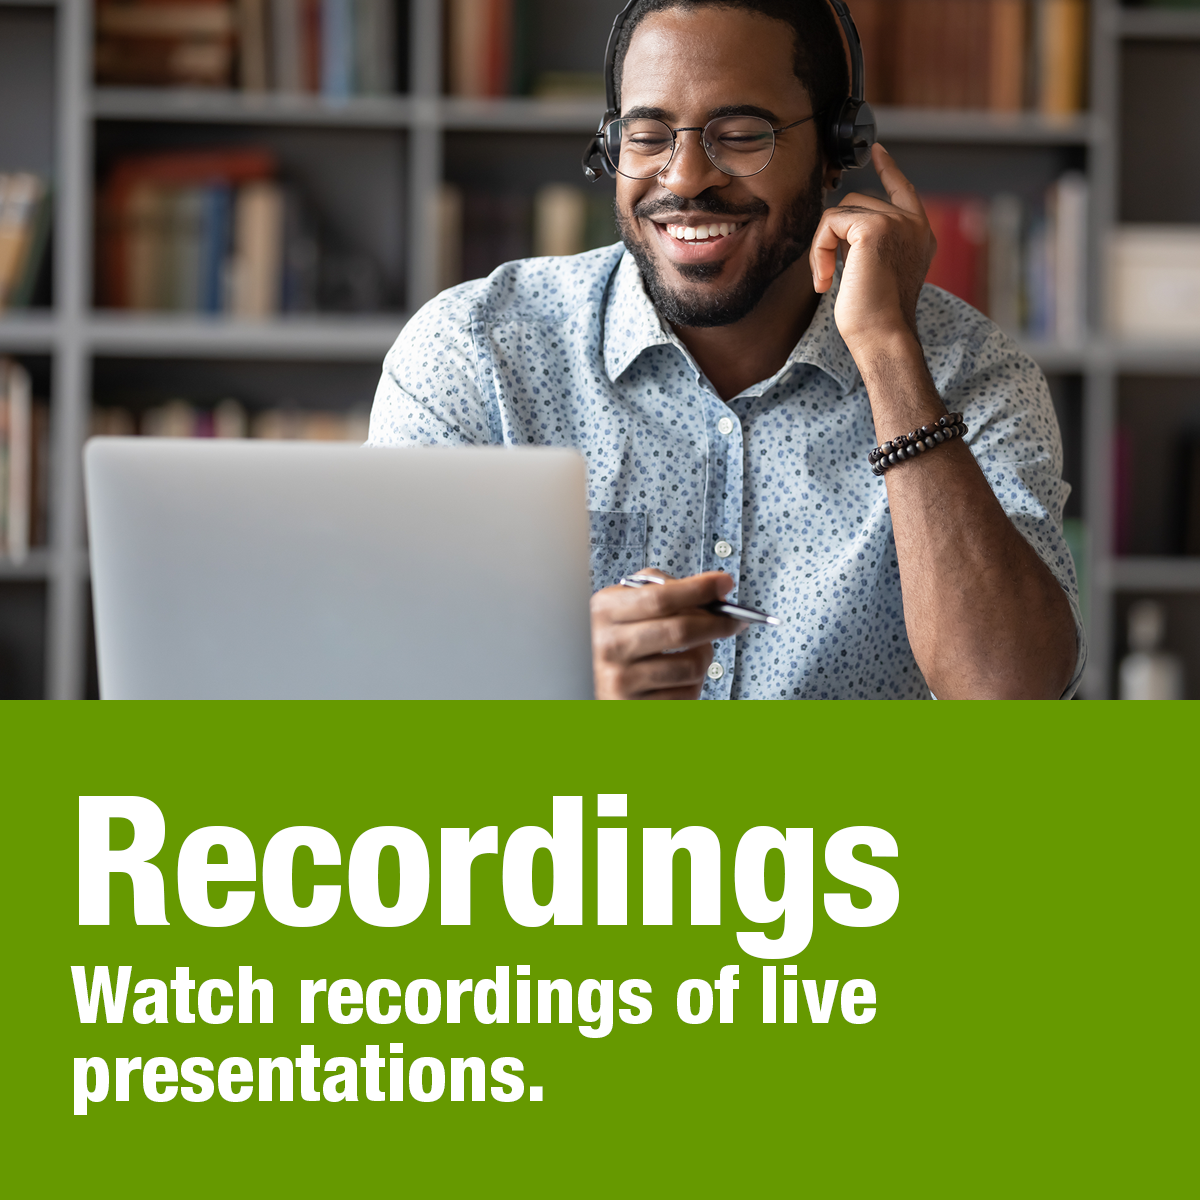 Watch recordings